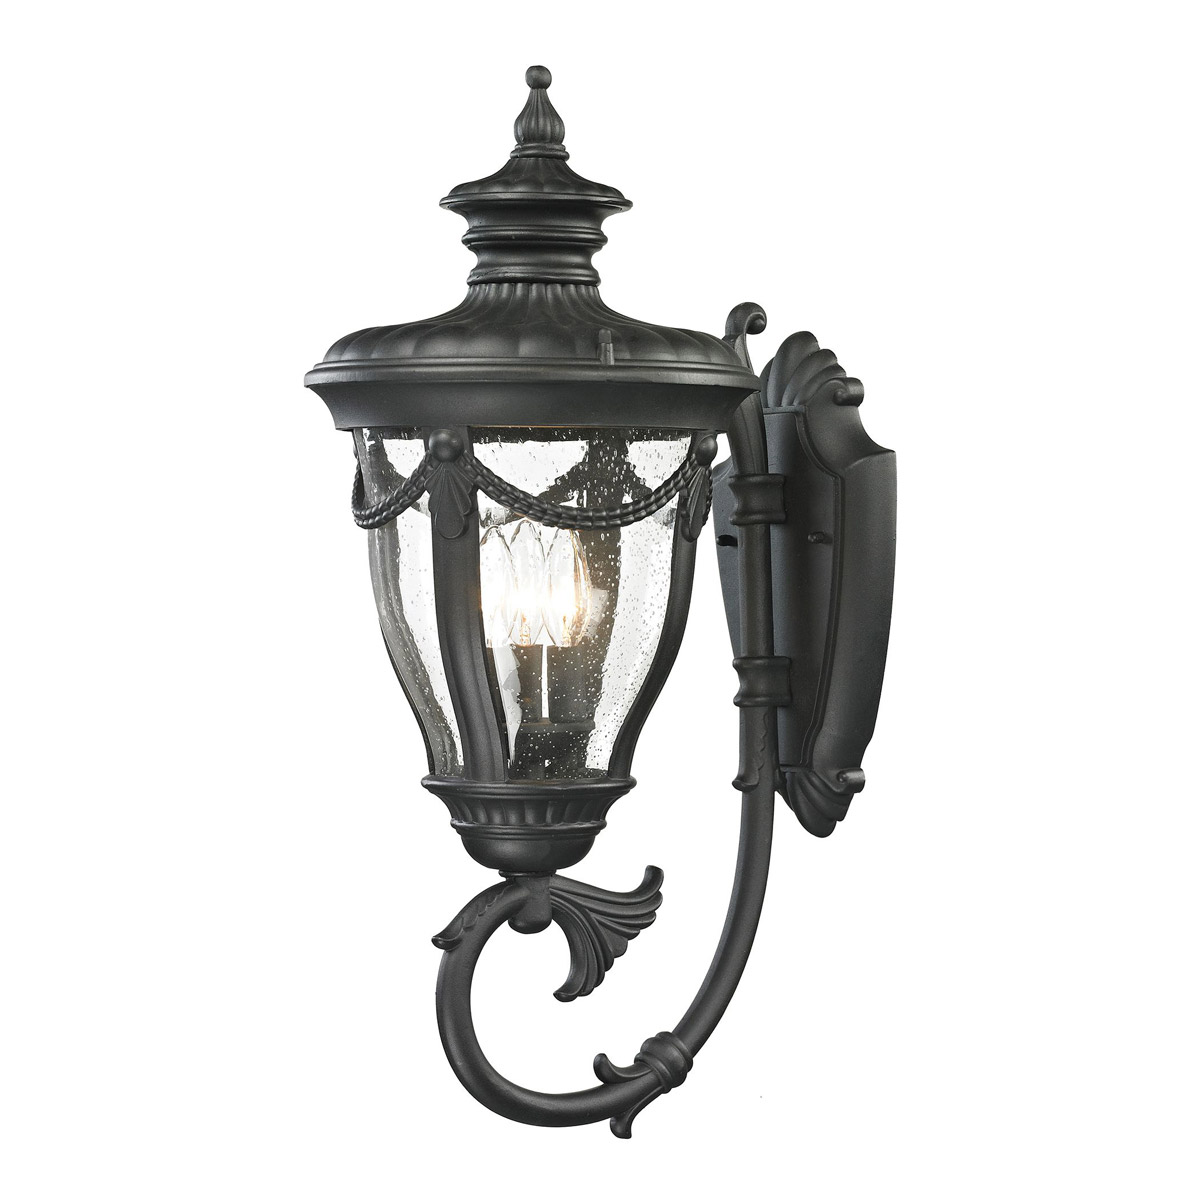 ELK Lighting Anise 45077 Outdoor Light Fixtures Brooklyn, New York - Accentuations Brand